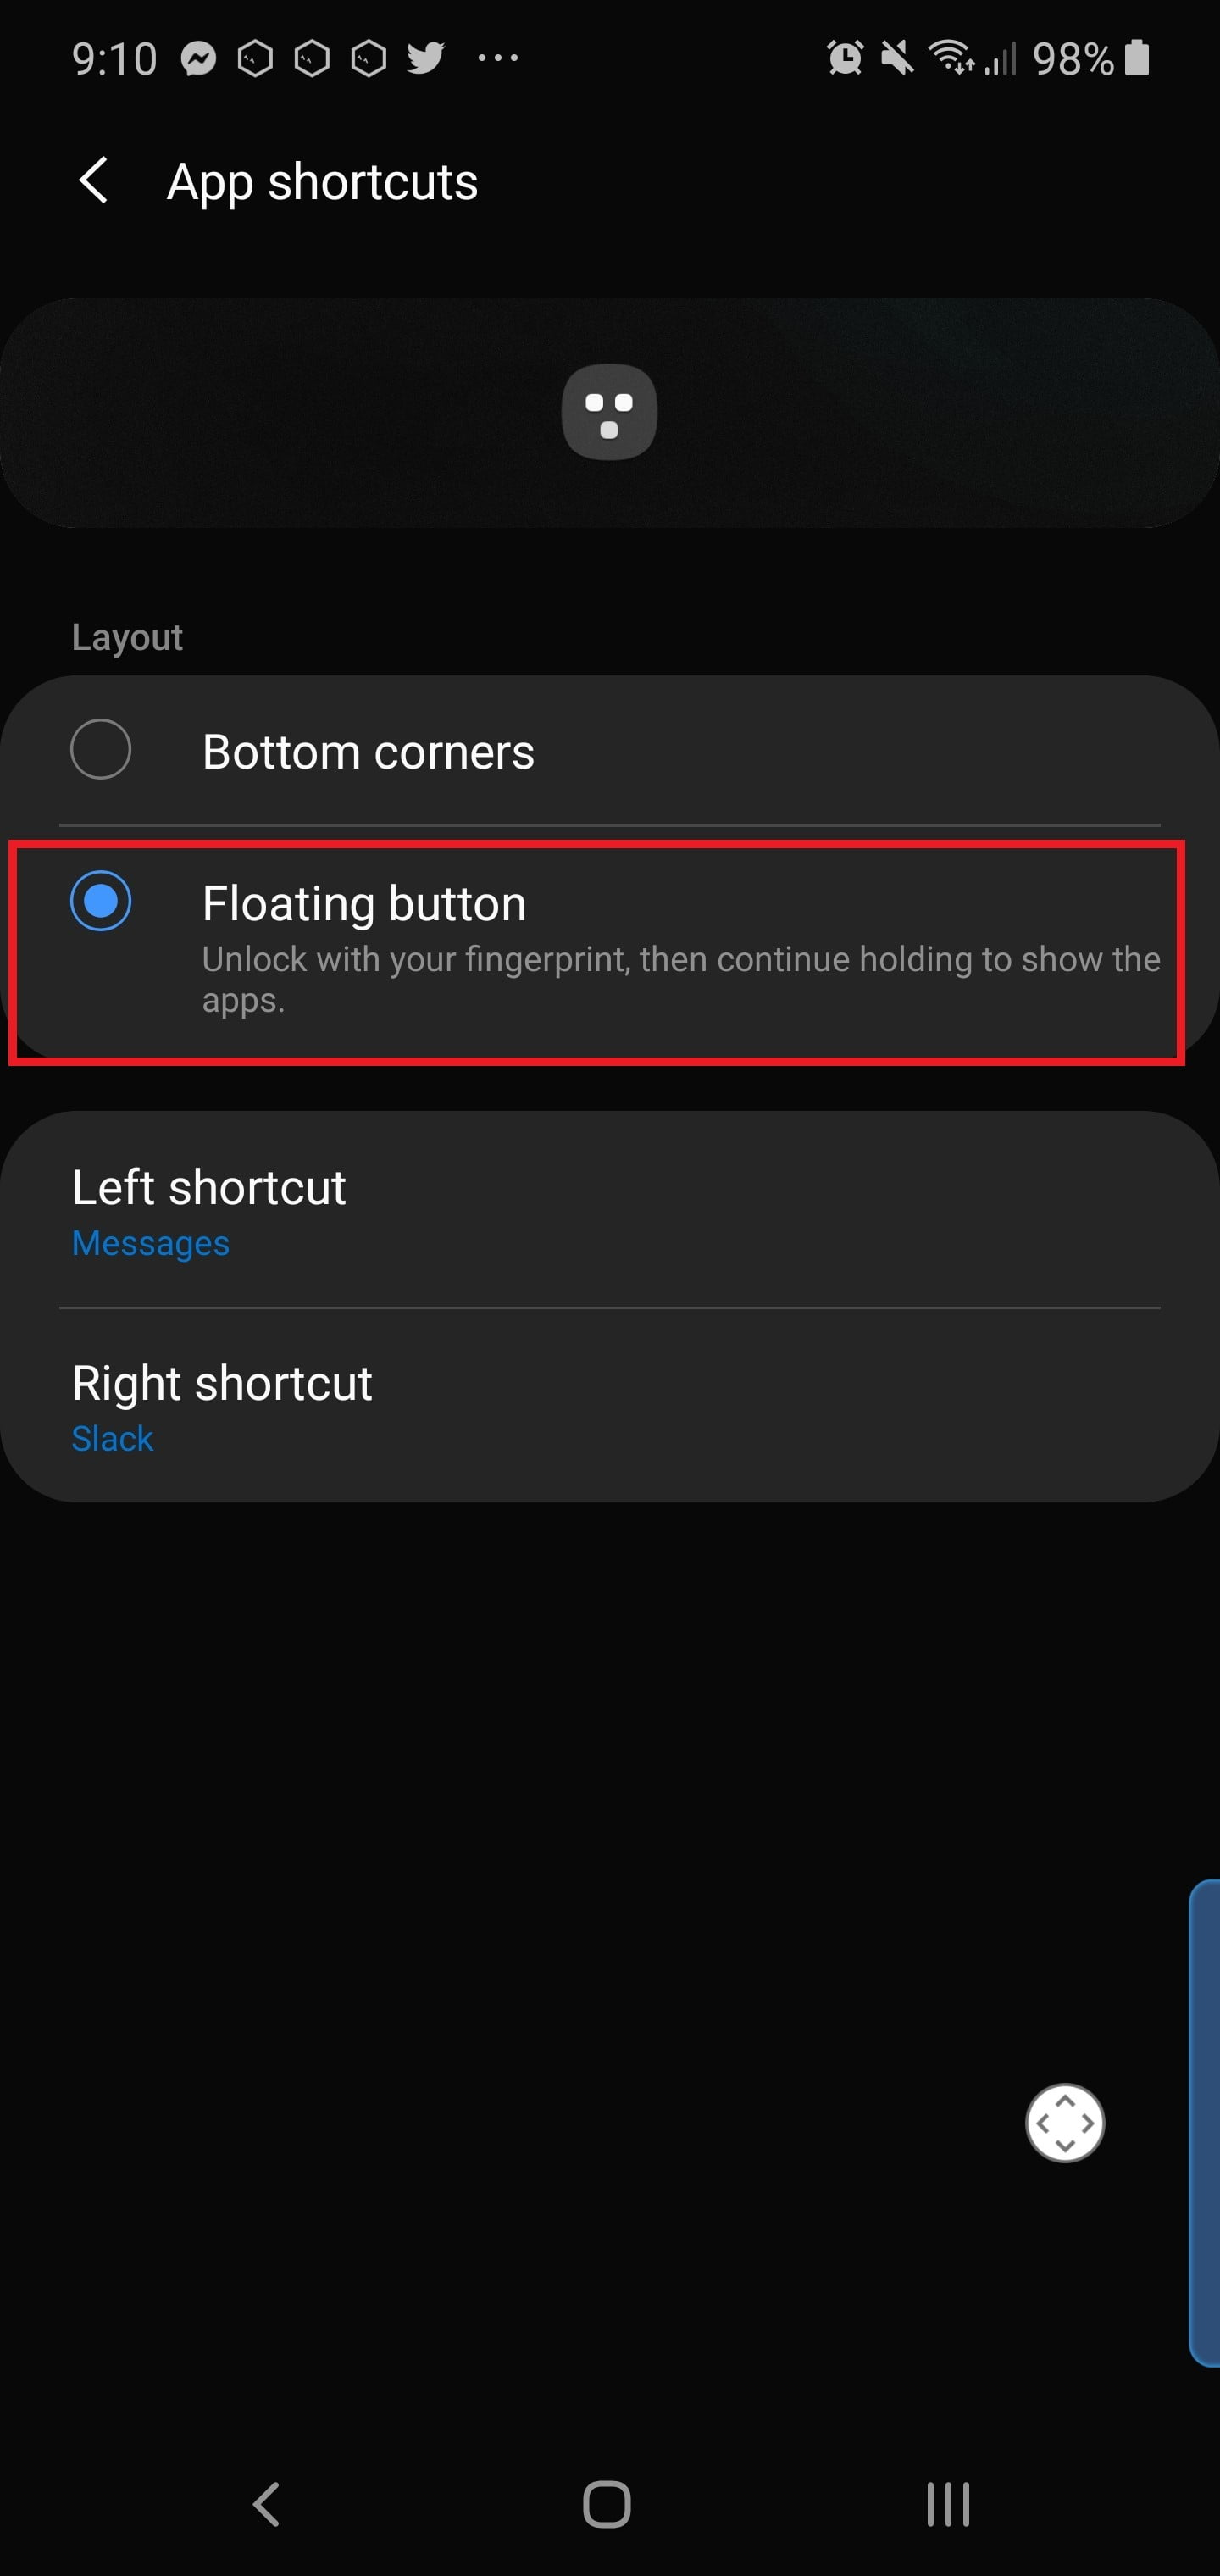 Samsung Galaxy Note 10 Or Note 10 Plus 11 Key Settings To Change Digital Trends